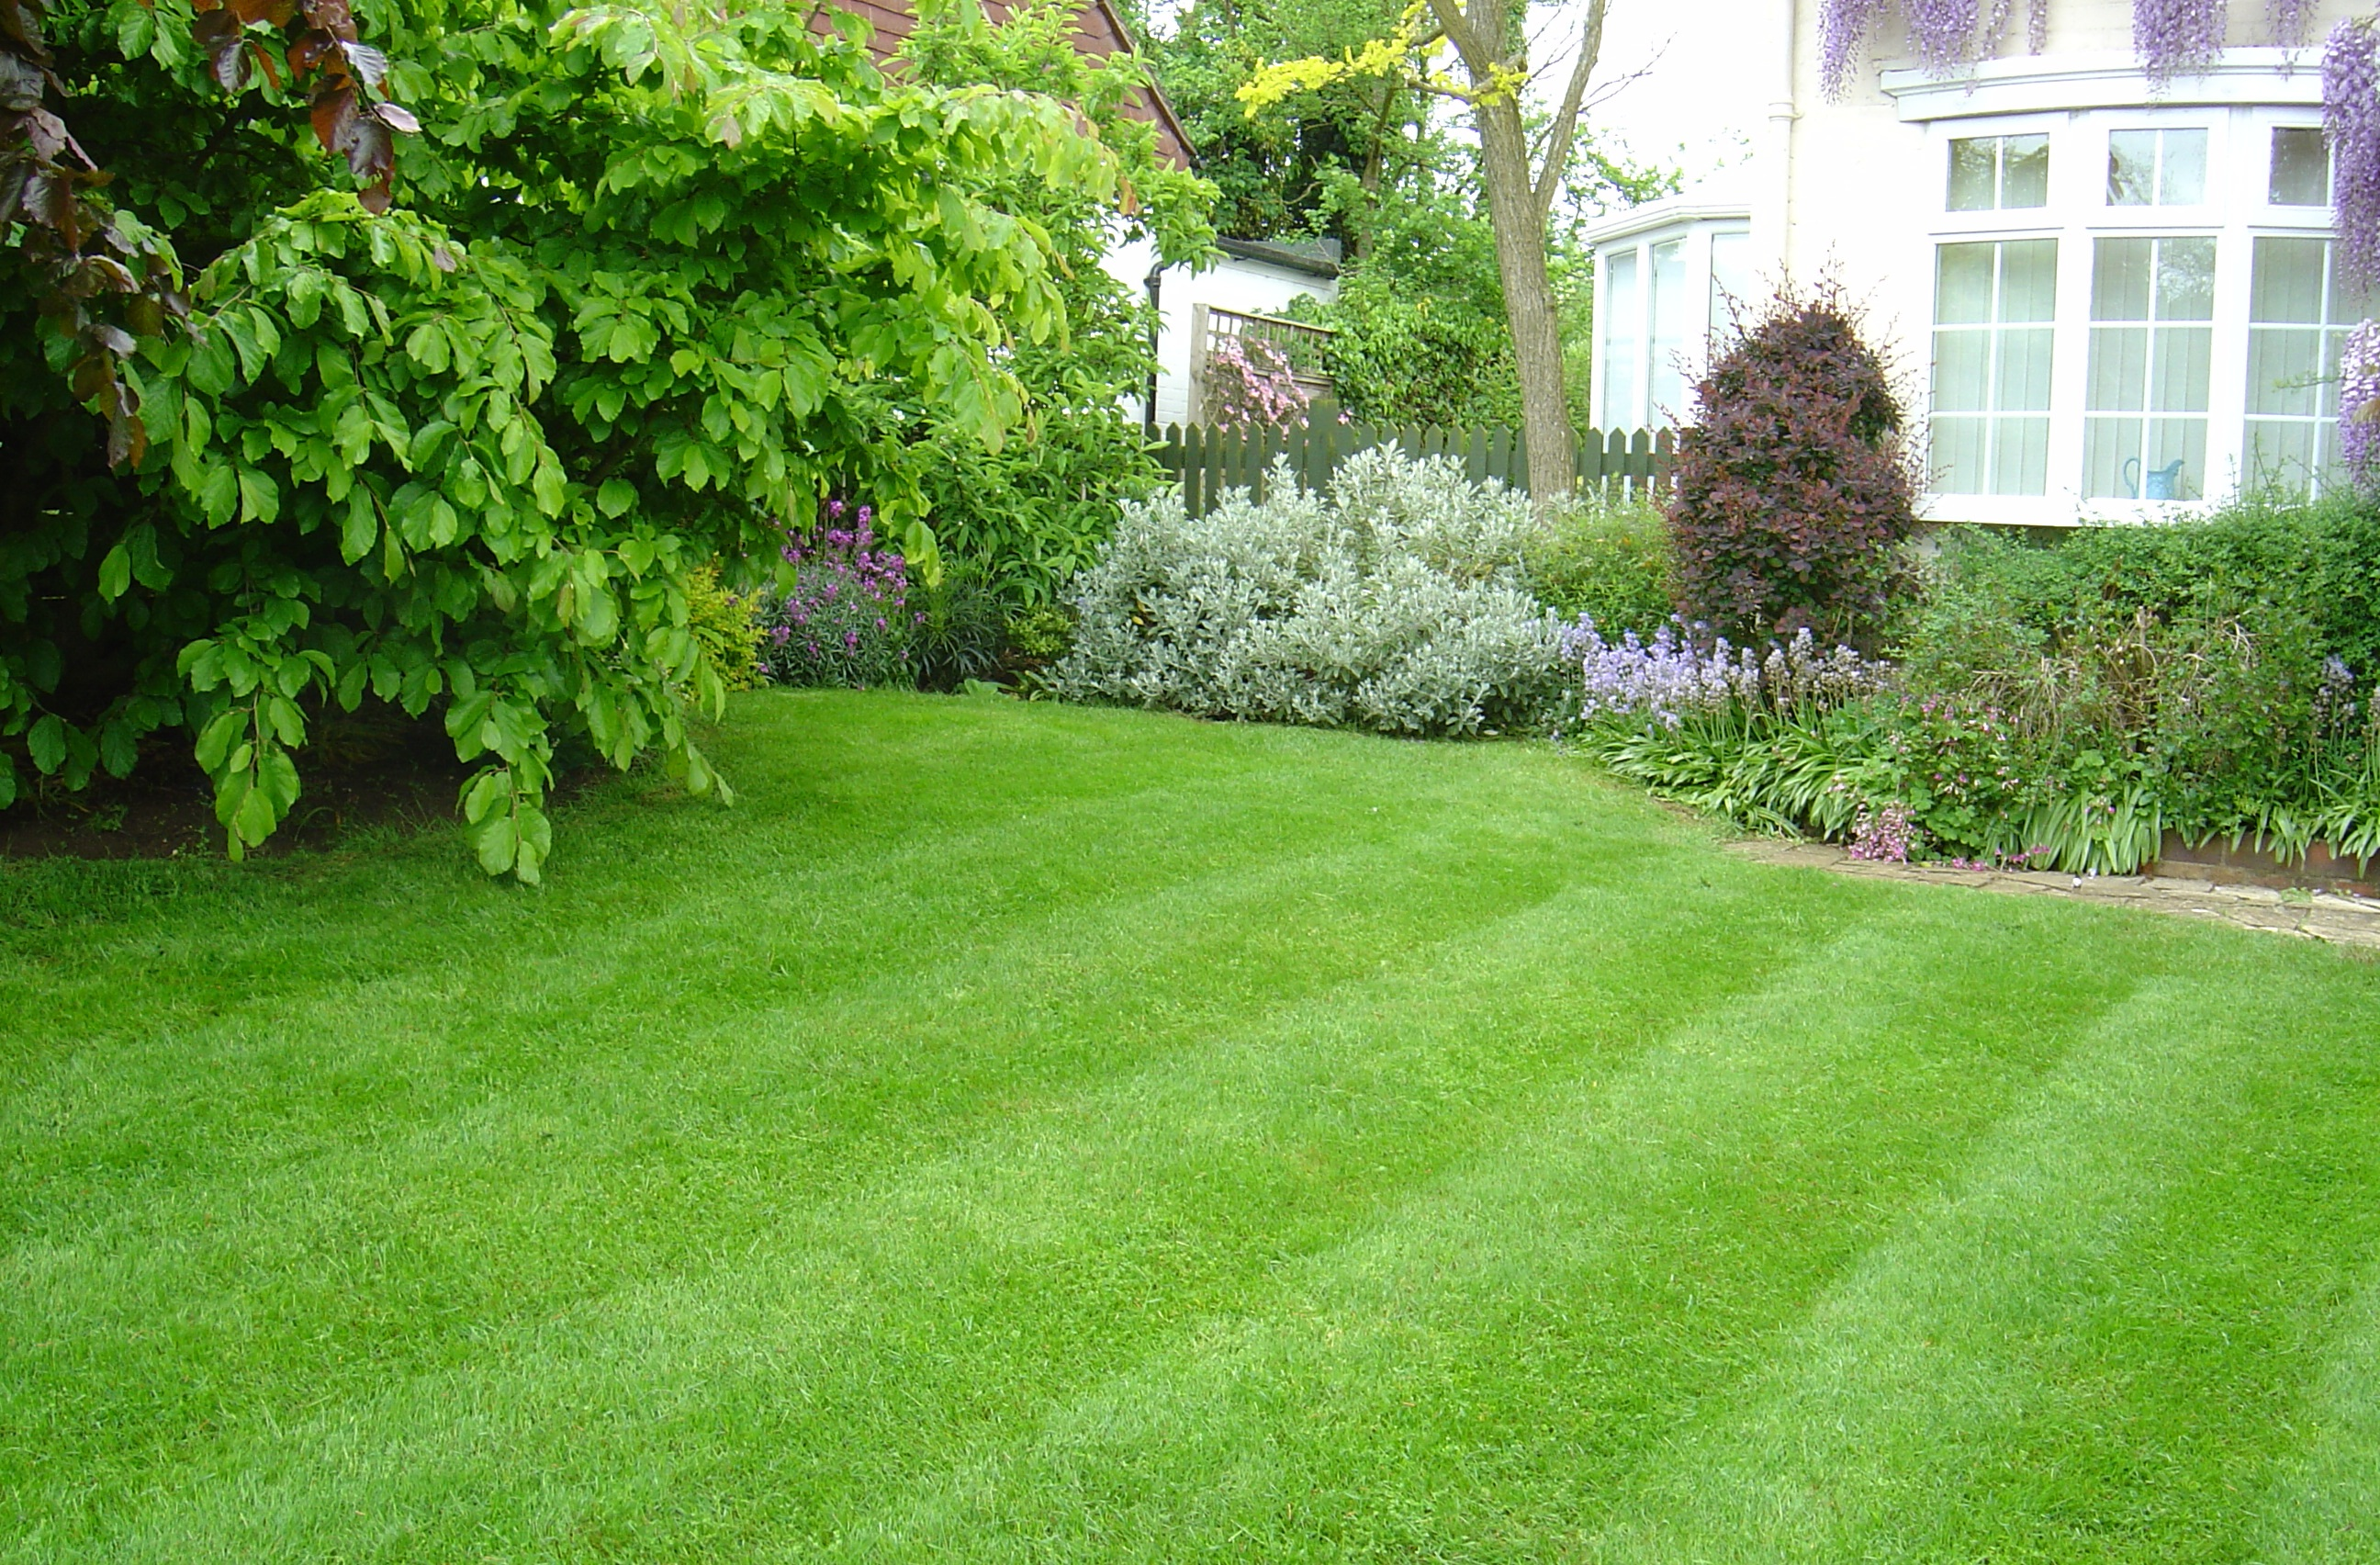 How to care for a lawn hirerush blog for Lawn care and maintenance